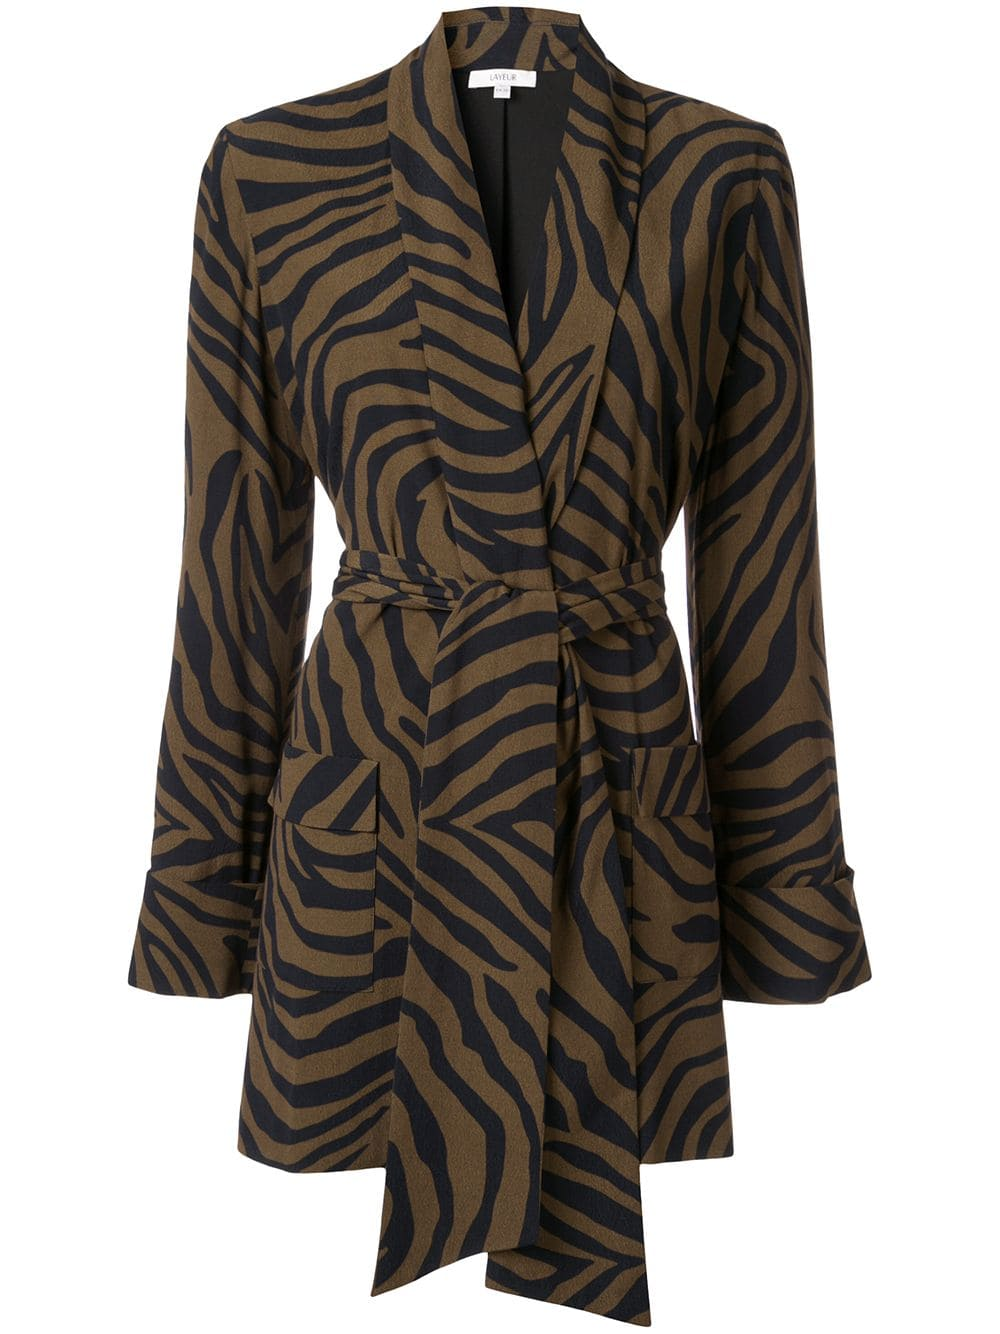 Get an Edge Up on Fall Outerwear, fall 2019 jacket trends, women's animal print jackets, LAYEUR zebra print jacket